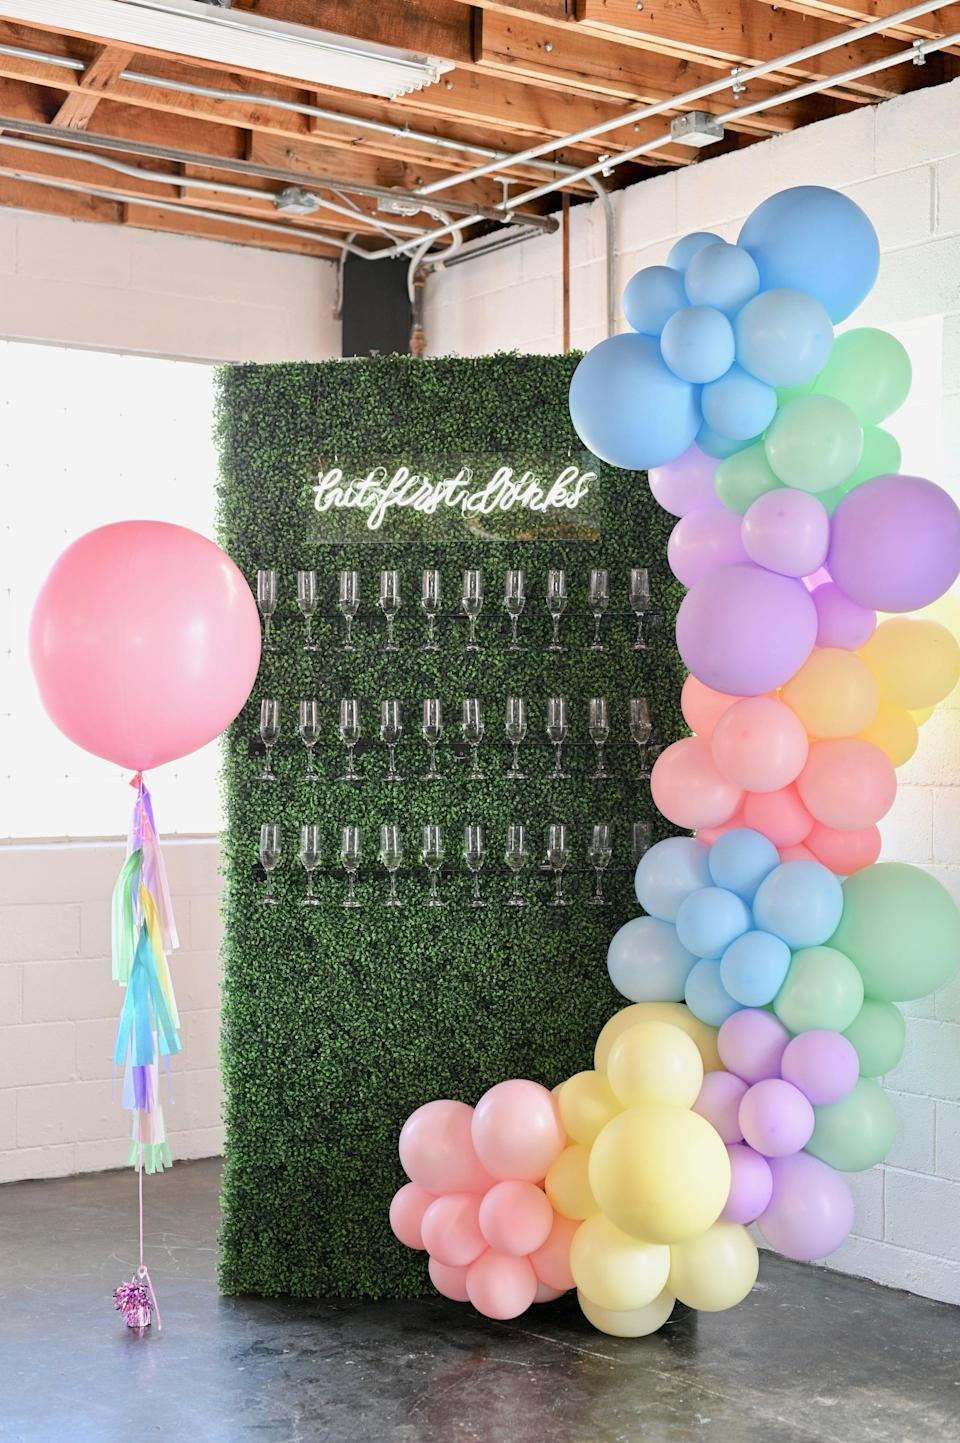 """<p>Make a <a class=""""link rapid-noclick-resp"""" href=""""https://www.popsugar.com/latest/DIY"""" rel=""""nofollow noopener"""" target=""""_blank"""" data-ylk=""""slk:DIY"""">DIY</a> drink wall with the help of a wooden board, plastic glasses, and clear shelving. Just glue the shelving in rows along the wooden board, add any decor you please (in this case, the couple used faux plants), and fill the glasses with the drinks of your choice before you place them onto the shelves.</p>"""